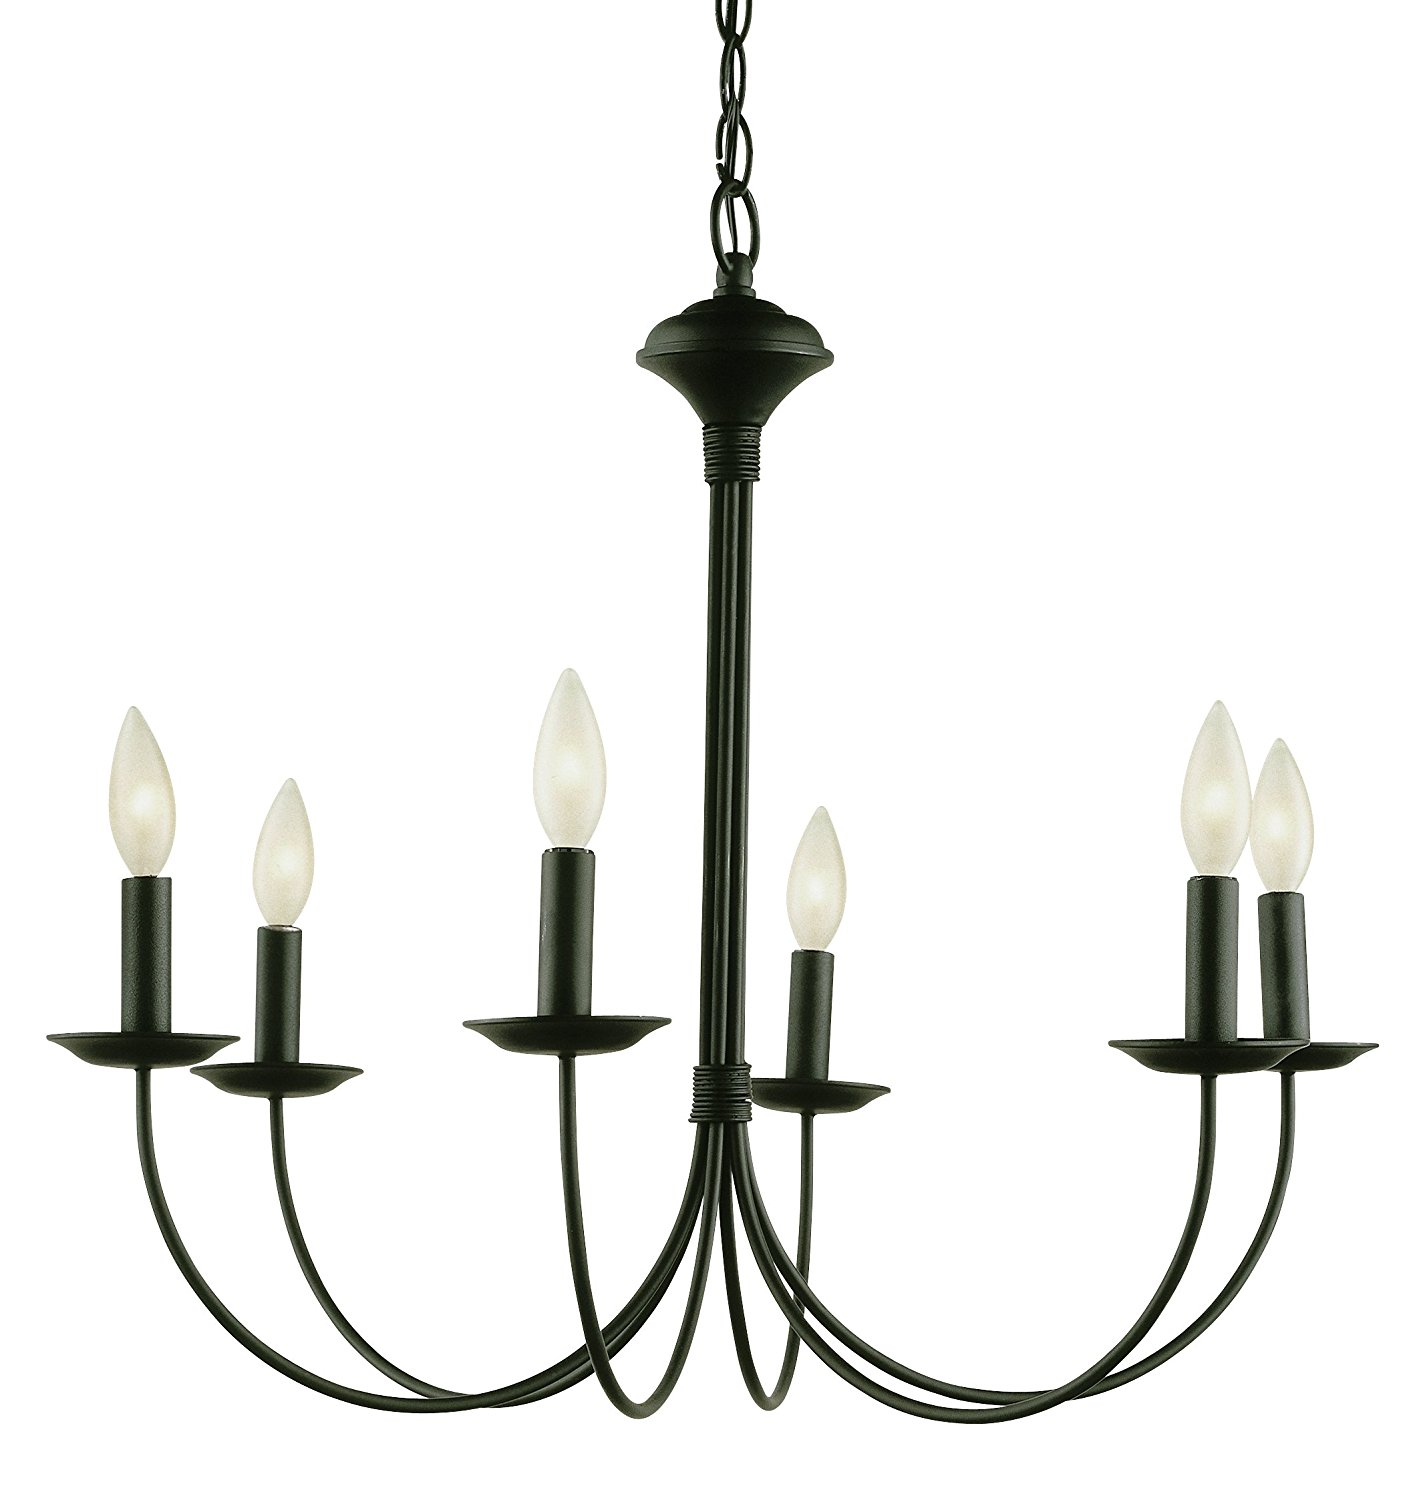 Farmhouse Light Fixtures Under On Amazon Southern Made Simple - Black iron kitchen light fixtures